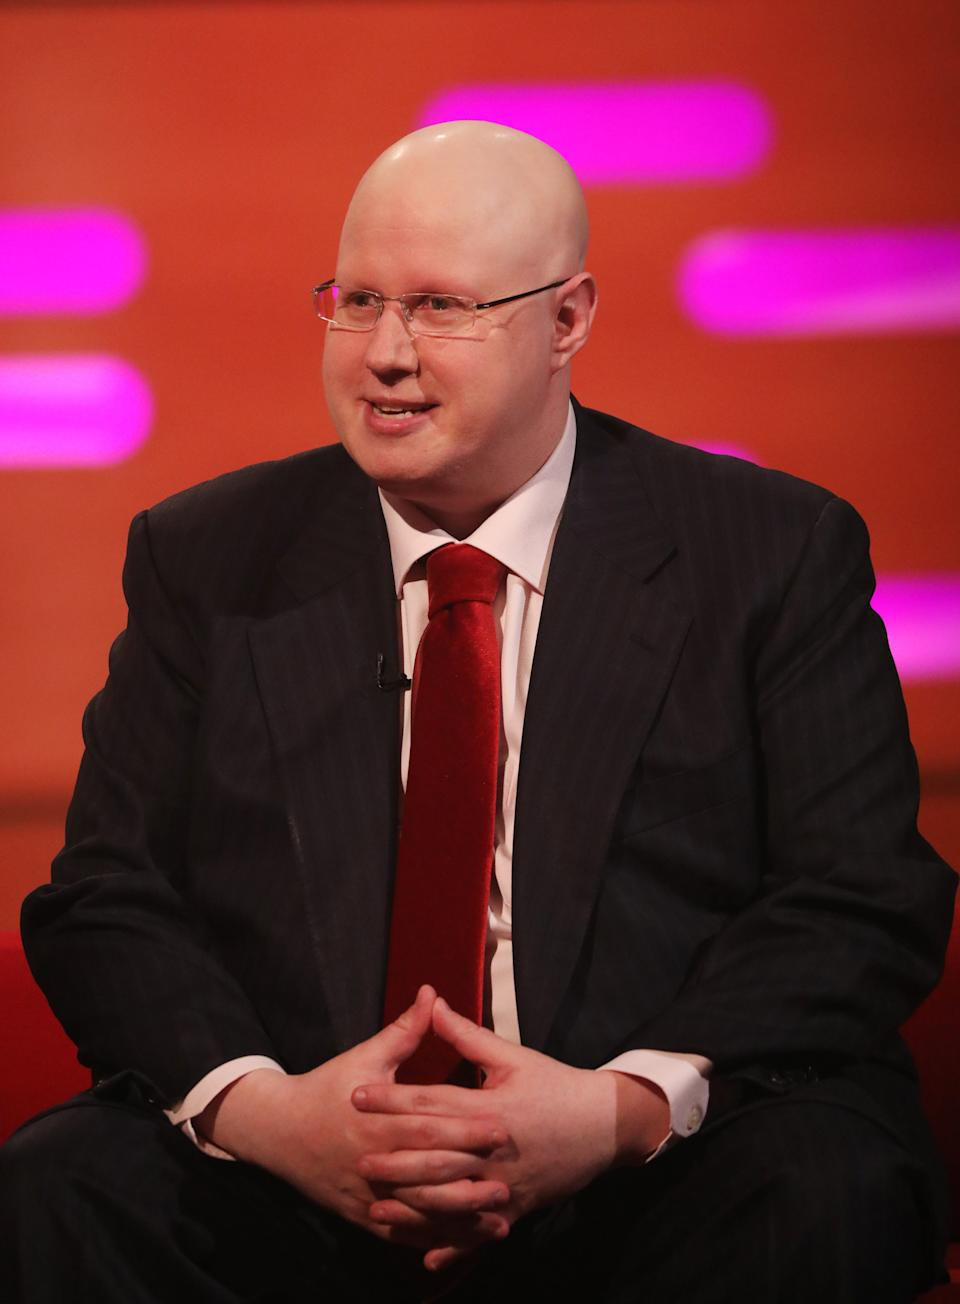 Embargoed to 1900 Sunday April 05 File photo dated 4/4/2019 of Matt Lucas whose charity song Thank You Baked Potato, which aims to raise money to help feed NHS workers, is on course to reach the top five in the UK singles chart.